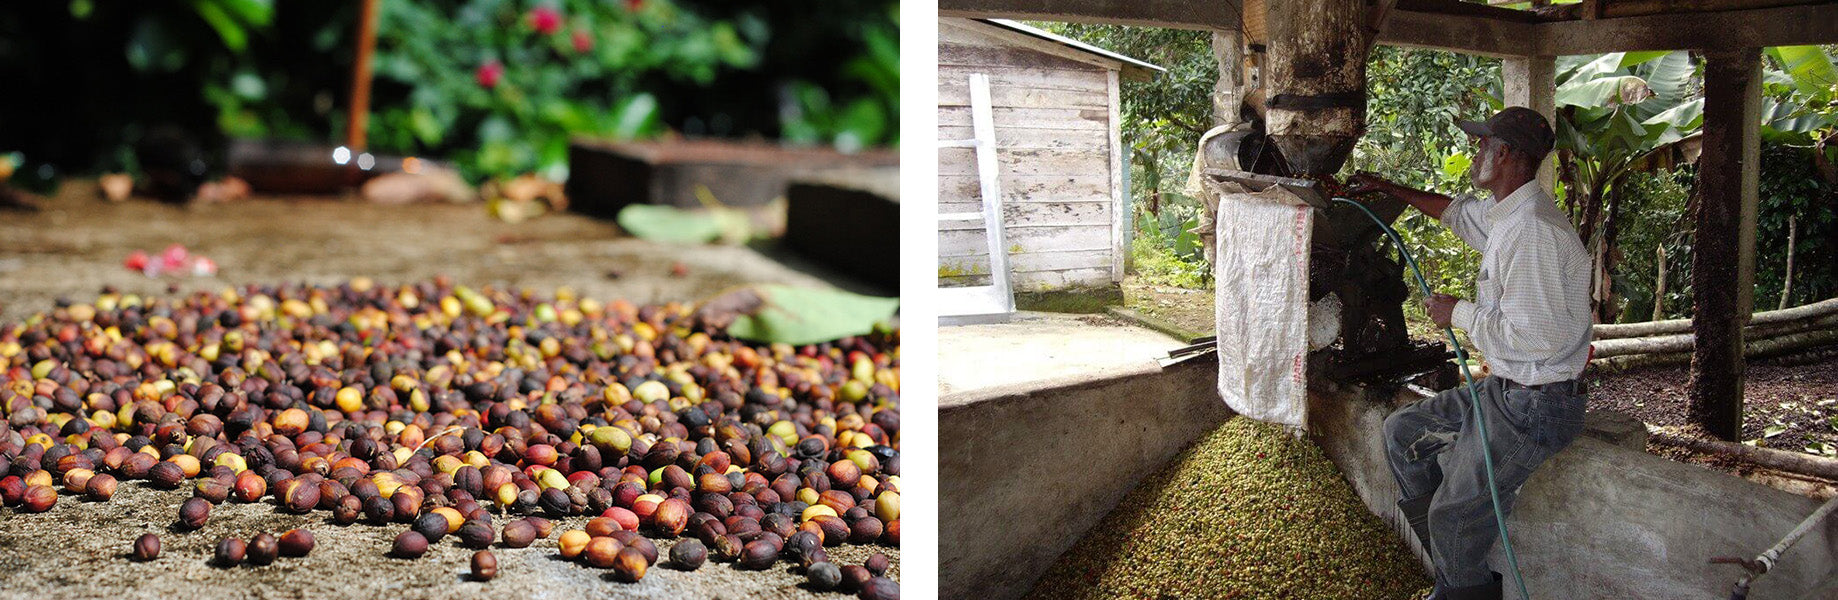 part of the process of coffee harvesting in cuba egm cigars